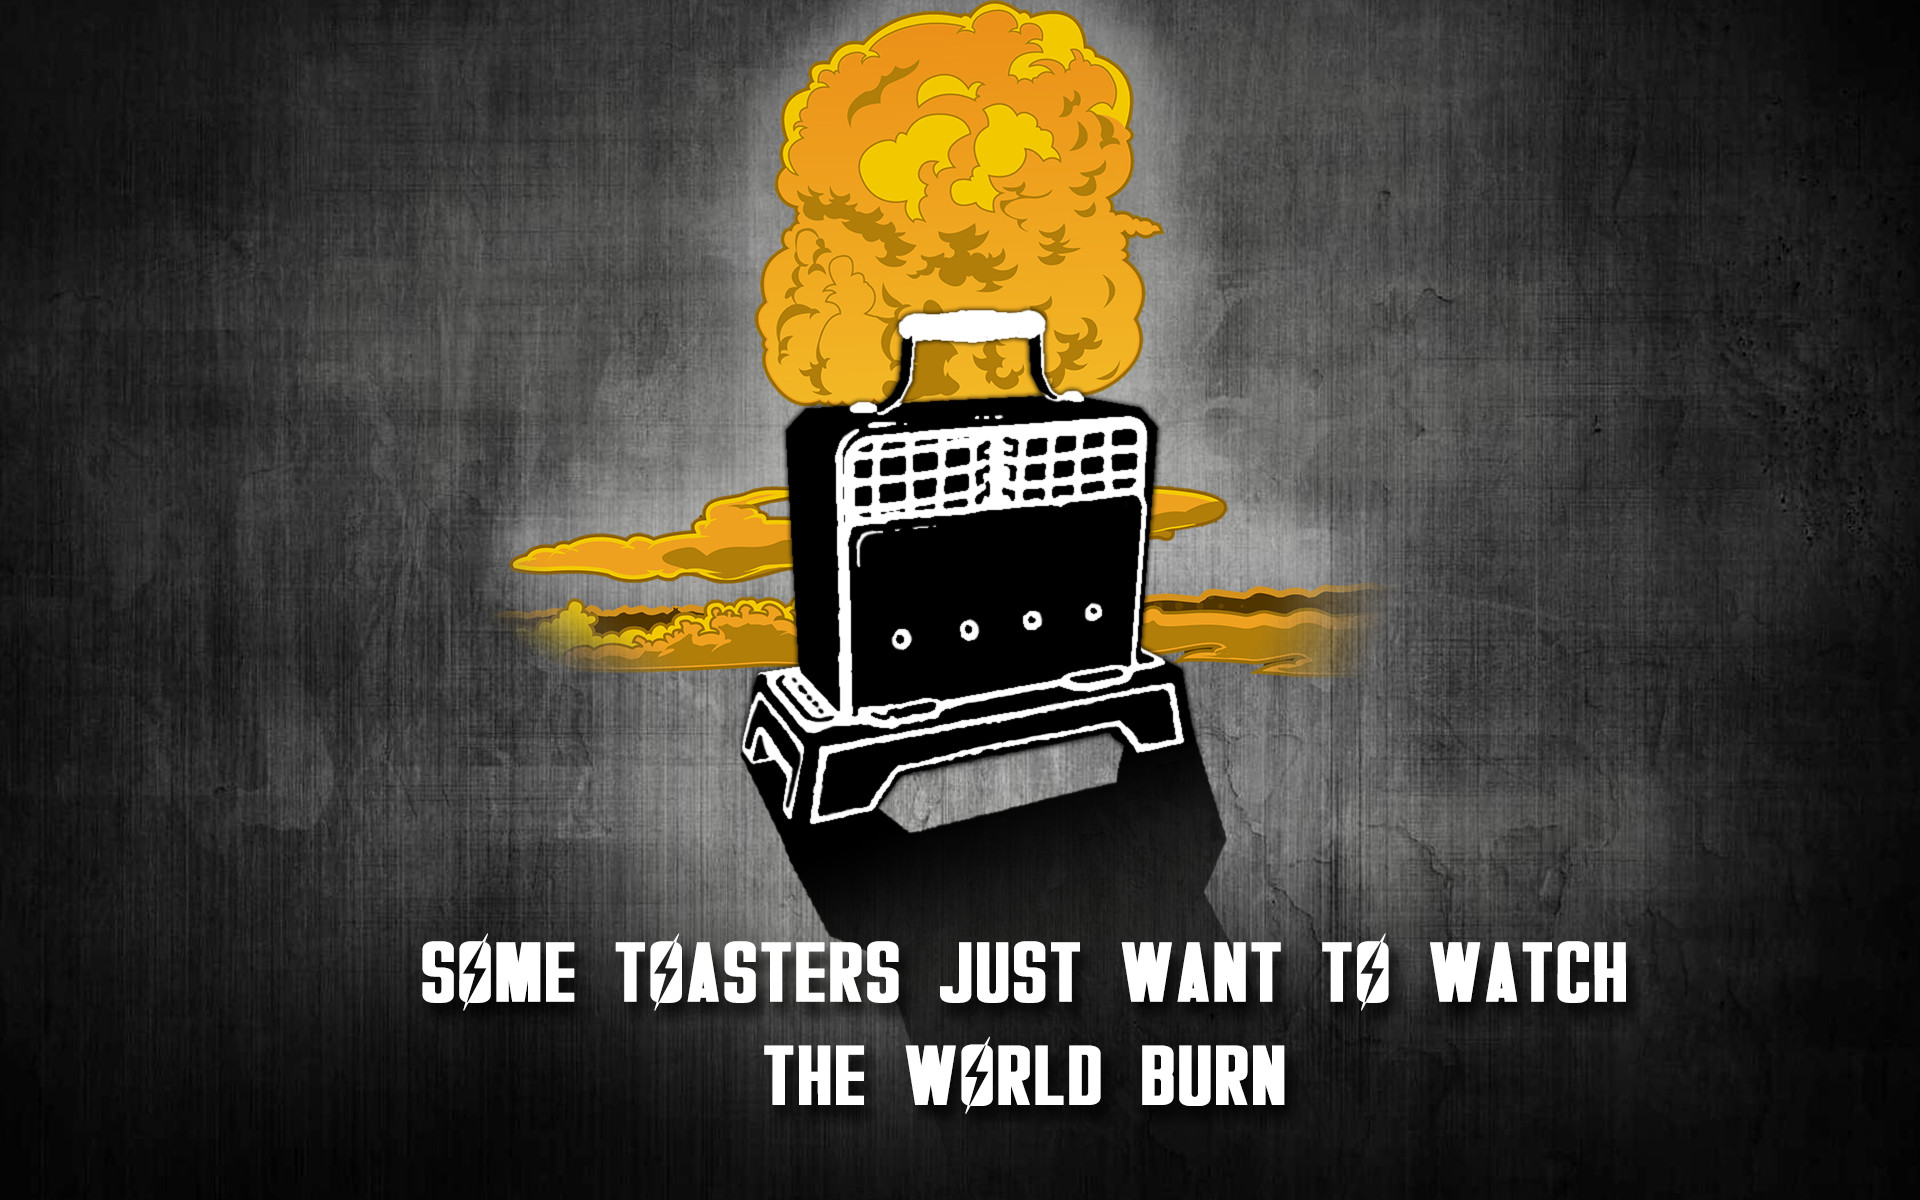 The Toaster From Hell